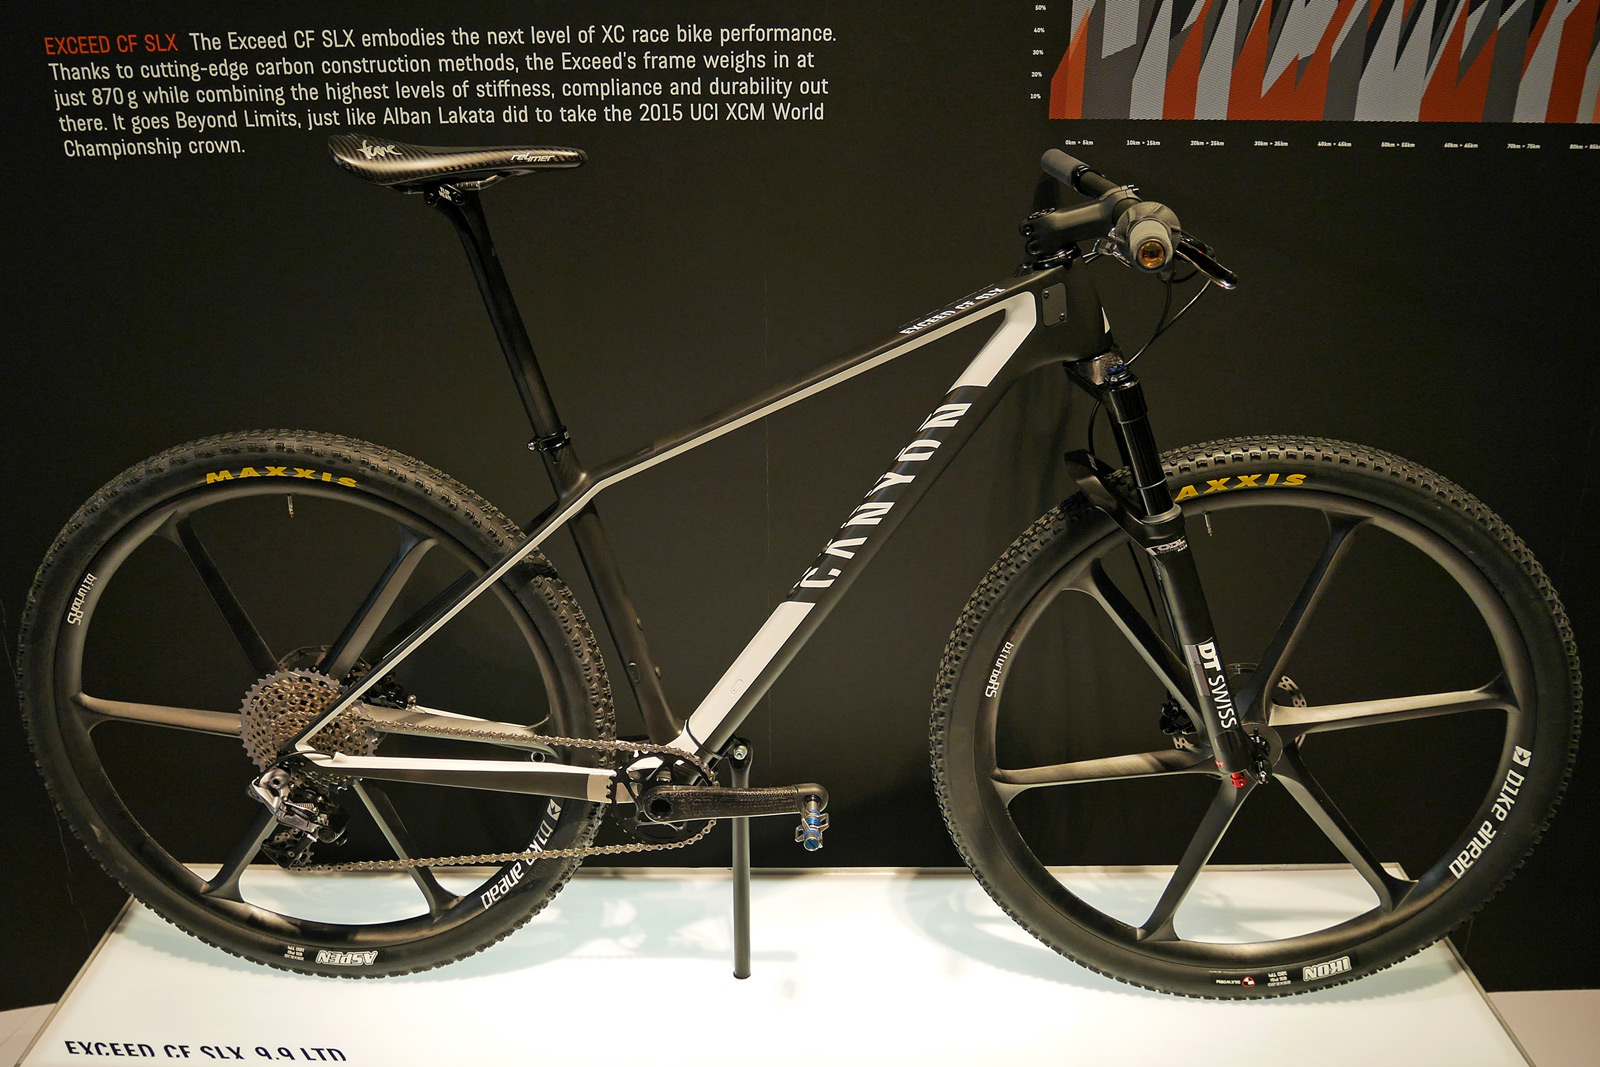 Canyon_Exceed-CF-SLX-9-9-LTD_carbon-lightweight-crosscountry-XC-race-bike_complete